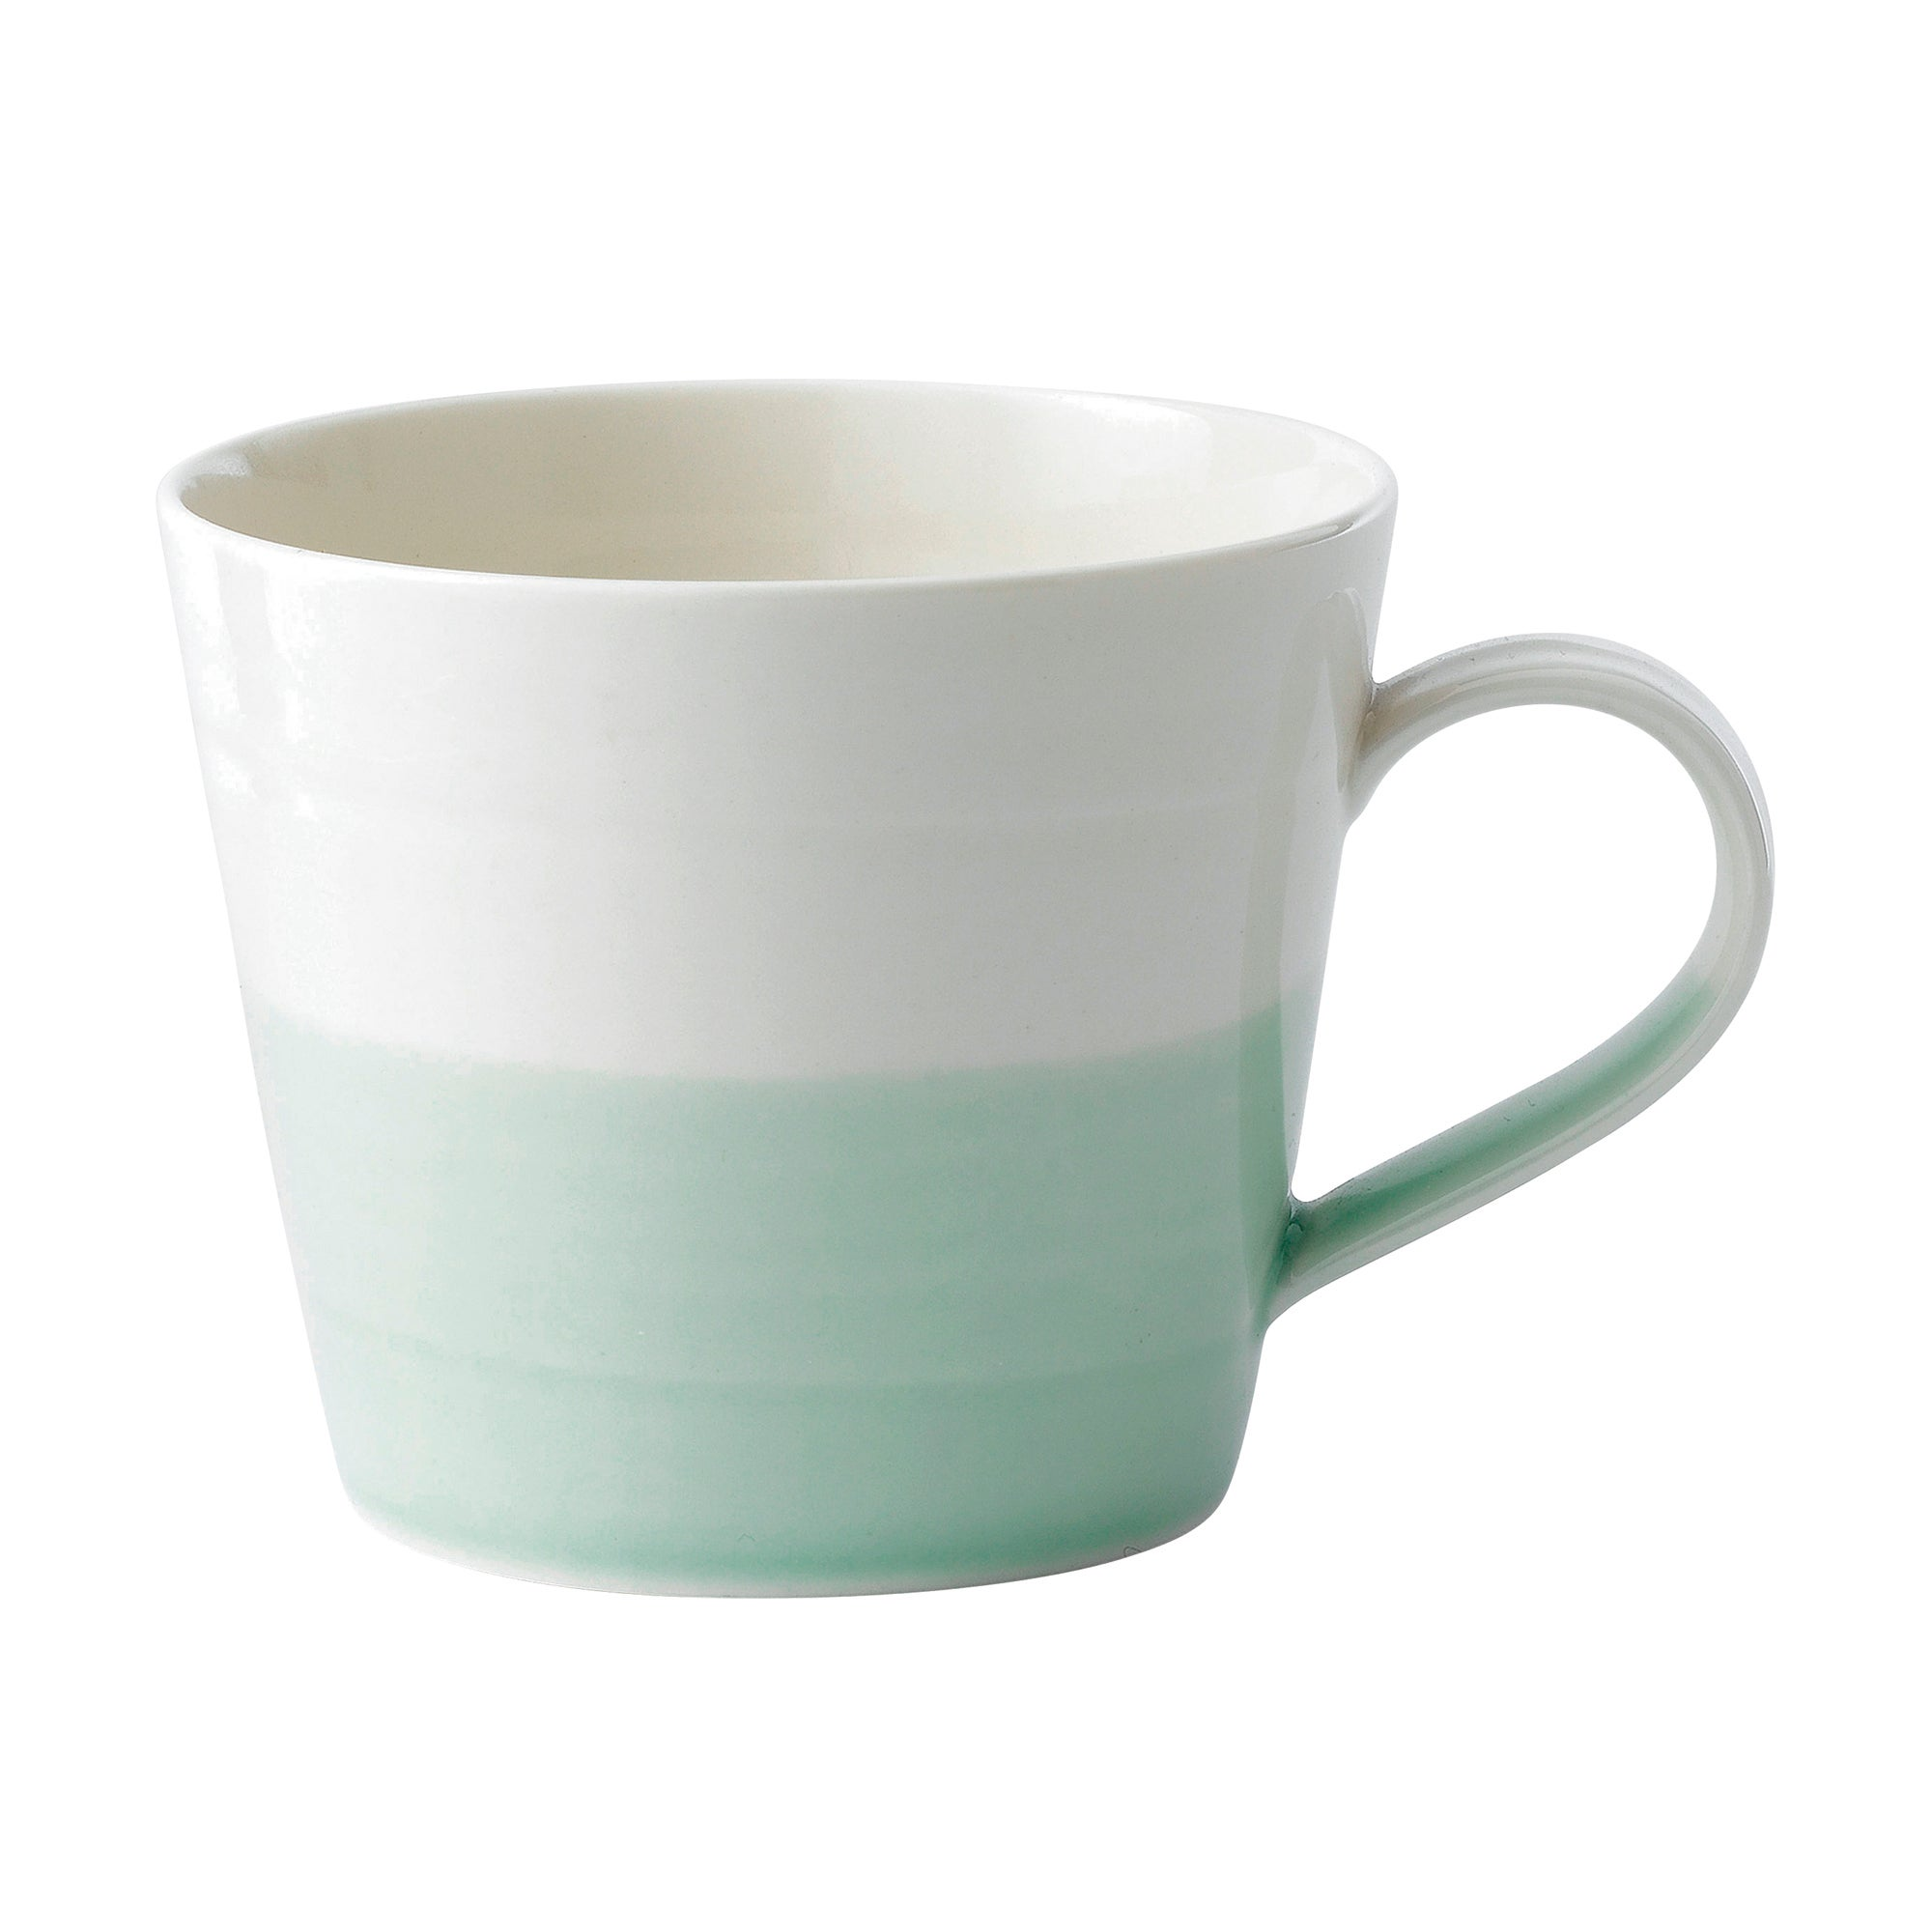 Royal Doulton Green 1815 Collection Teacup